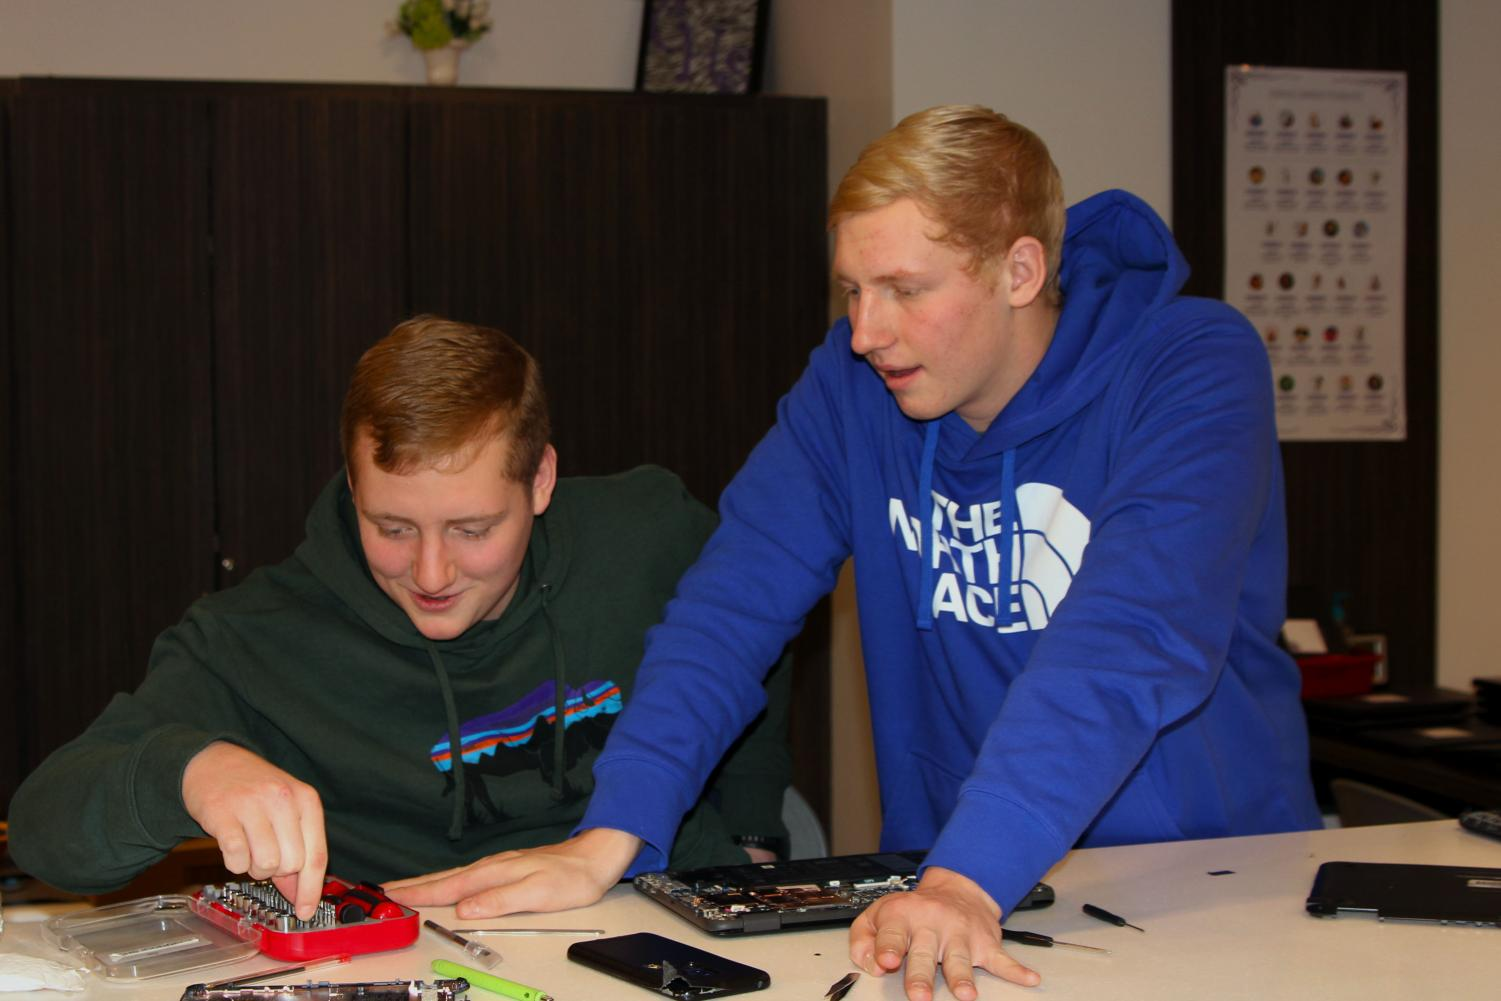 Sophomore Max Smith and senior Cooper Smith repair a Chromebook using skills they learned during the Dell training.